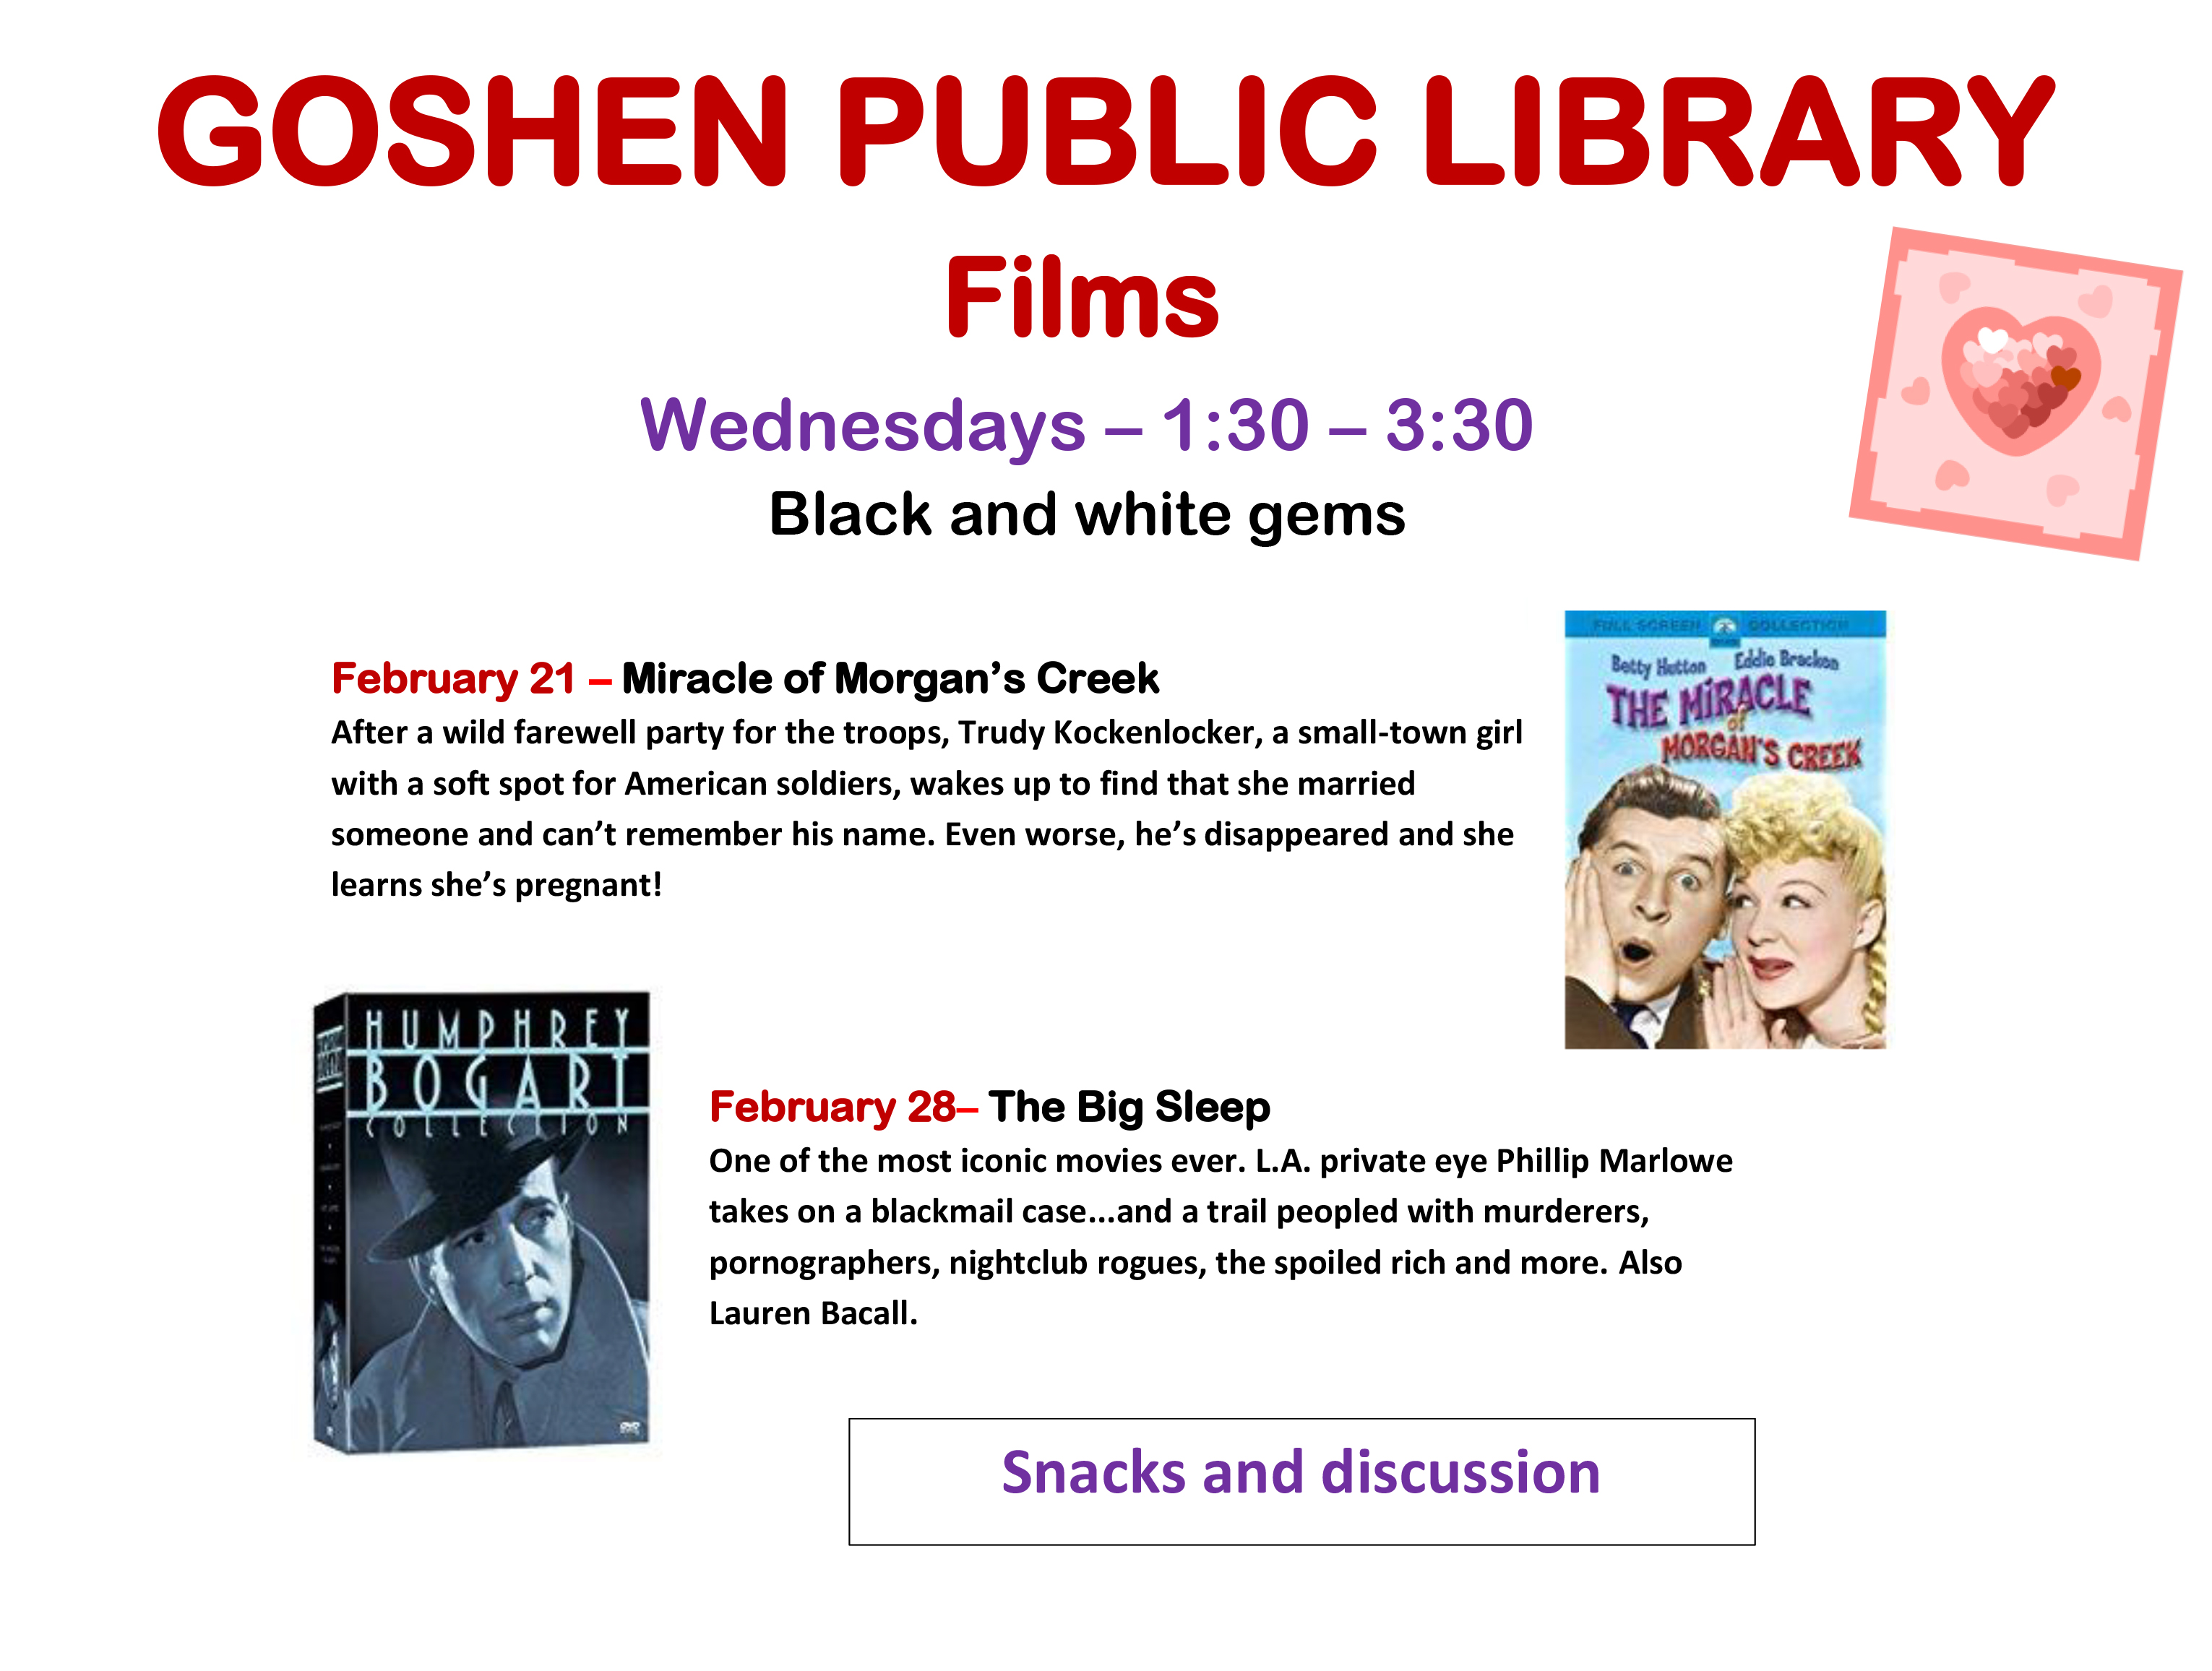 GOSHEN PUBLIC LIBRARY films Feb 21 2018